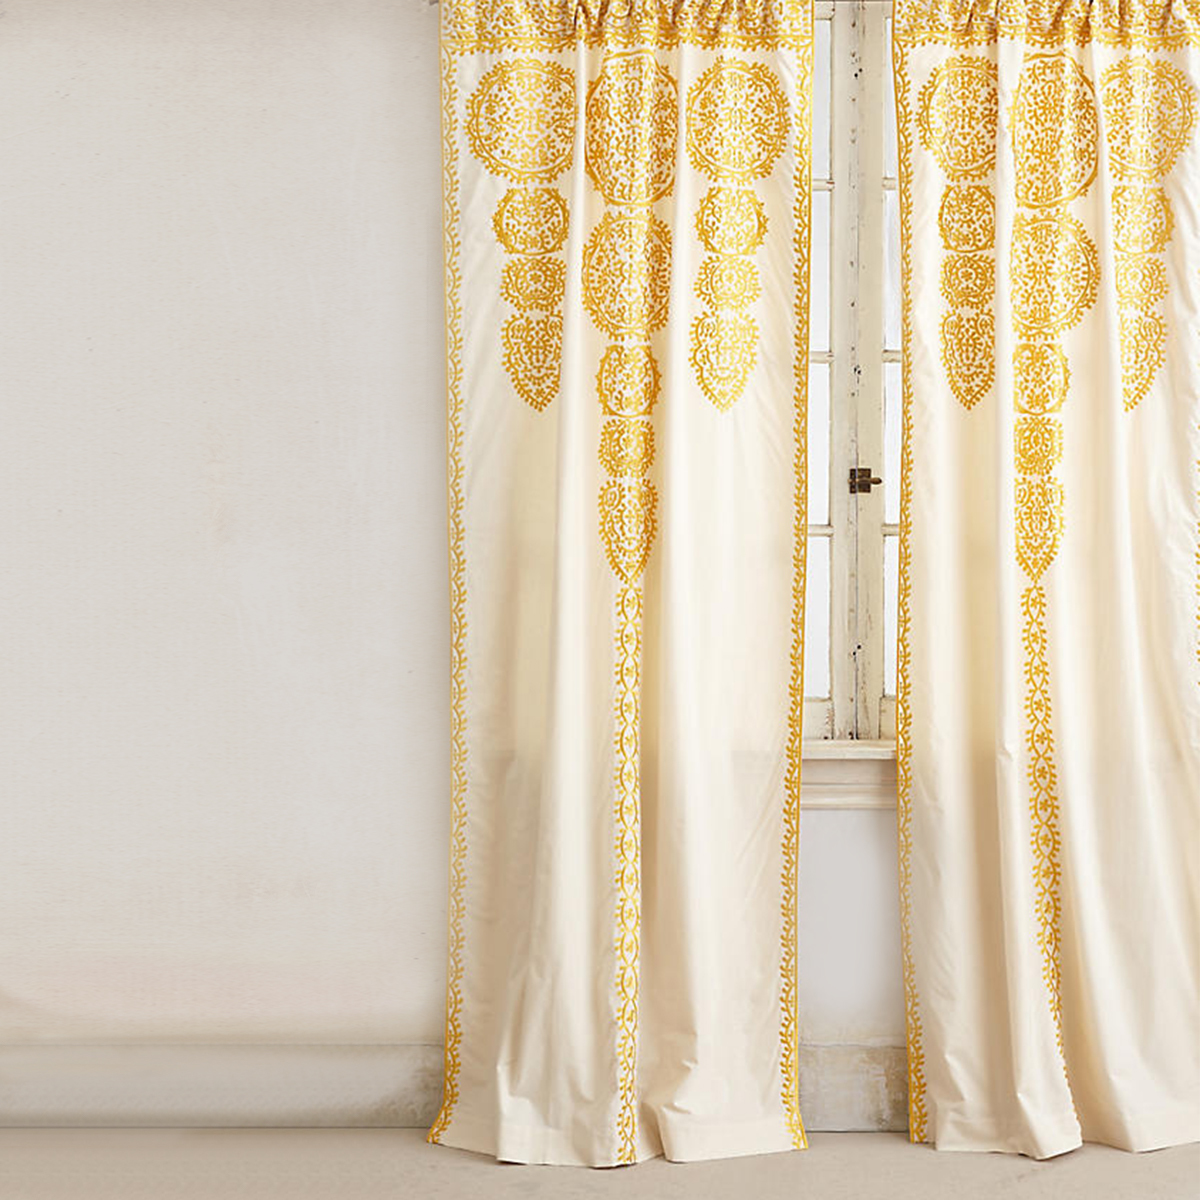 yellow embroidered curtains with unique pattern. photo